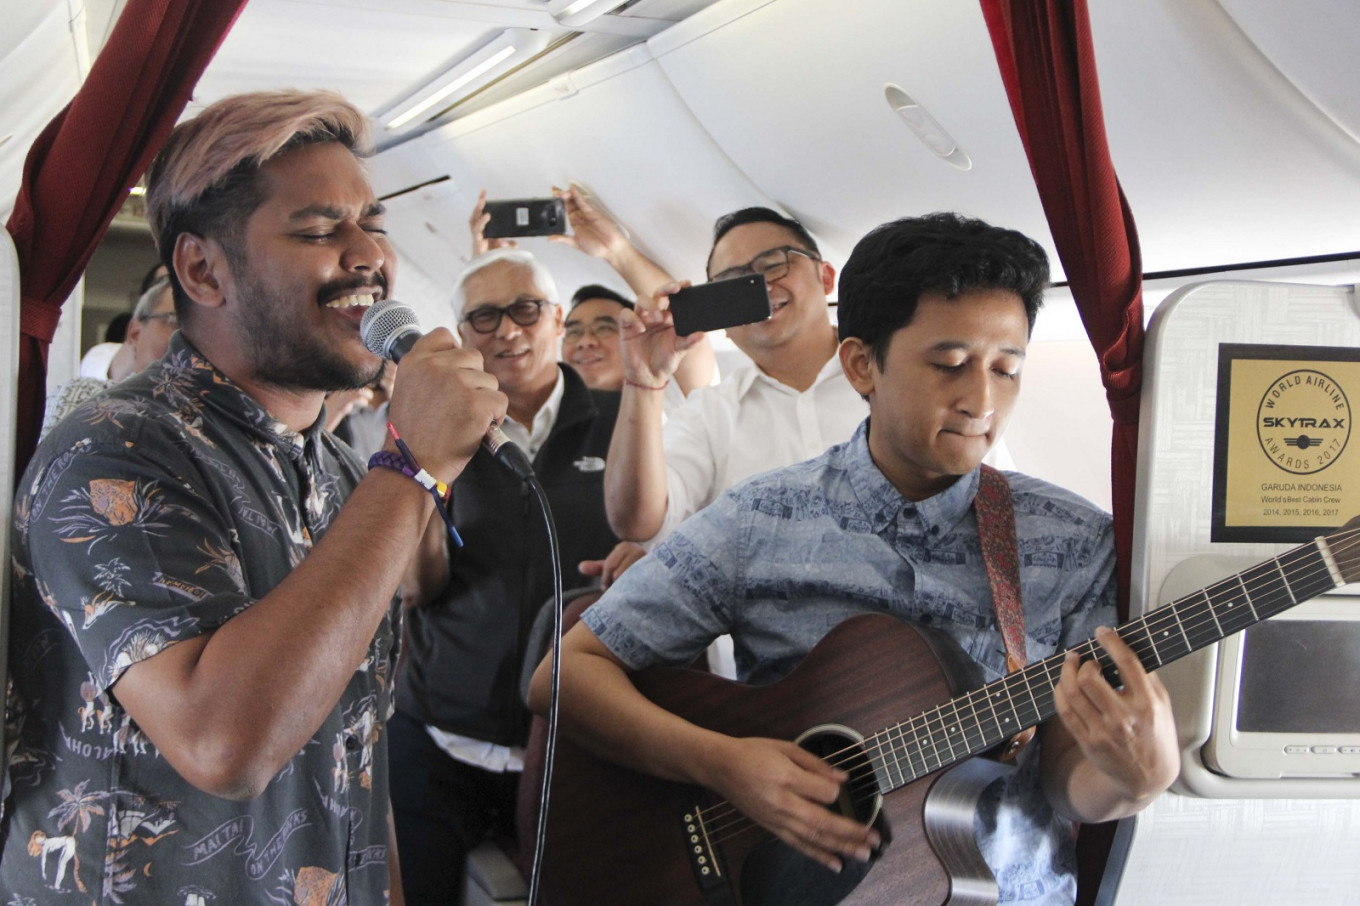 Garuda Indonesia brings live music to the skies